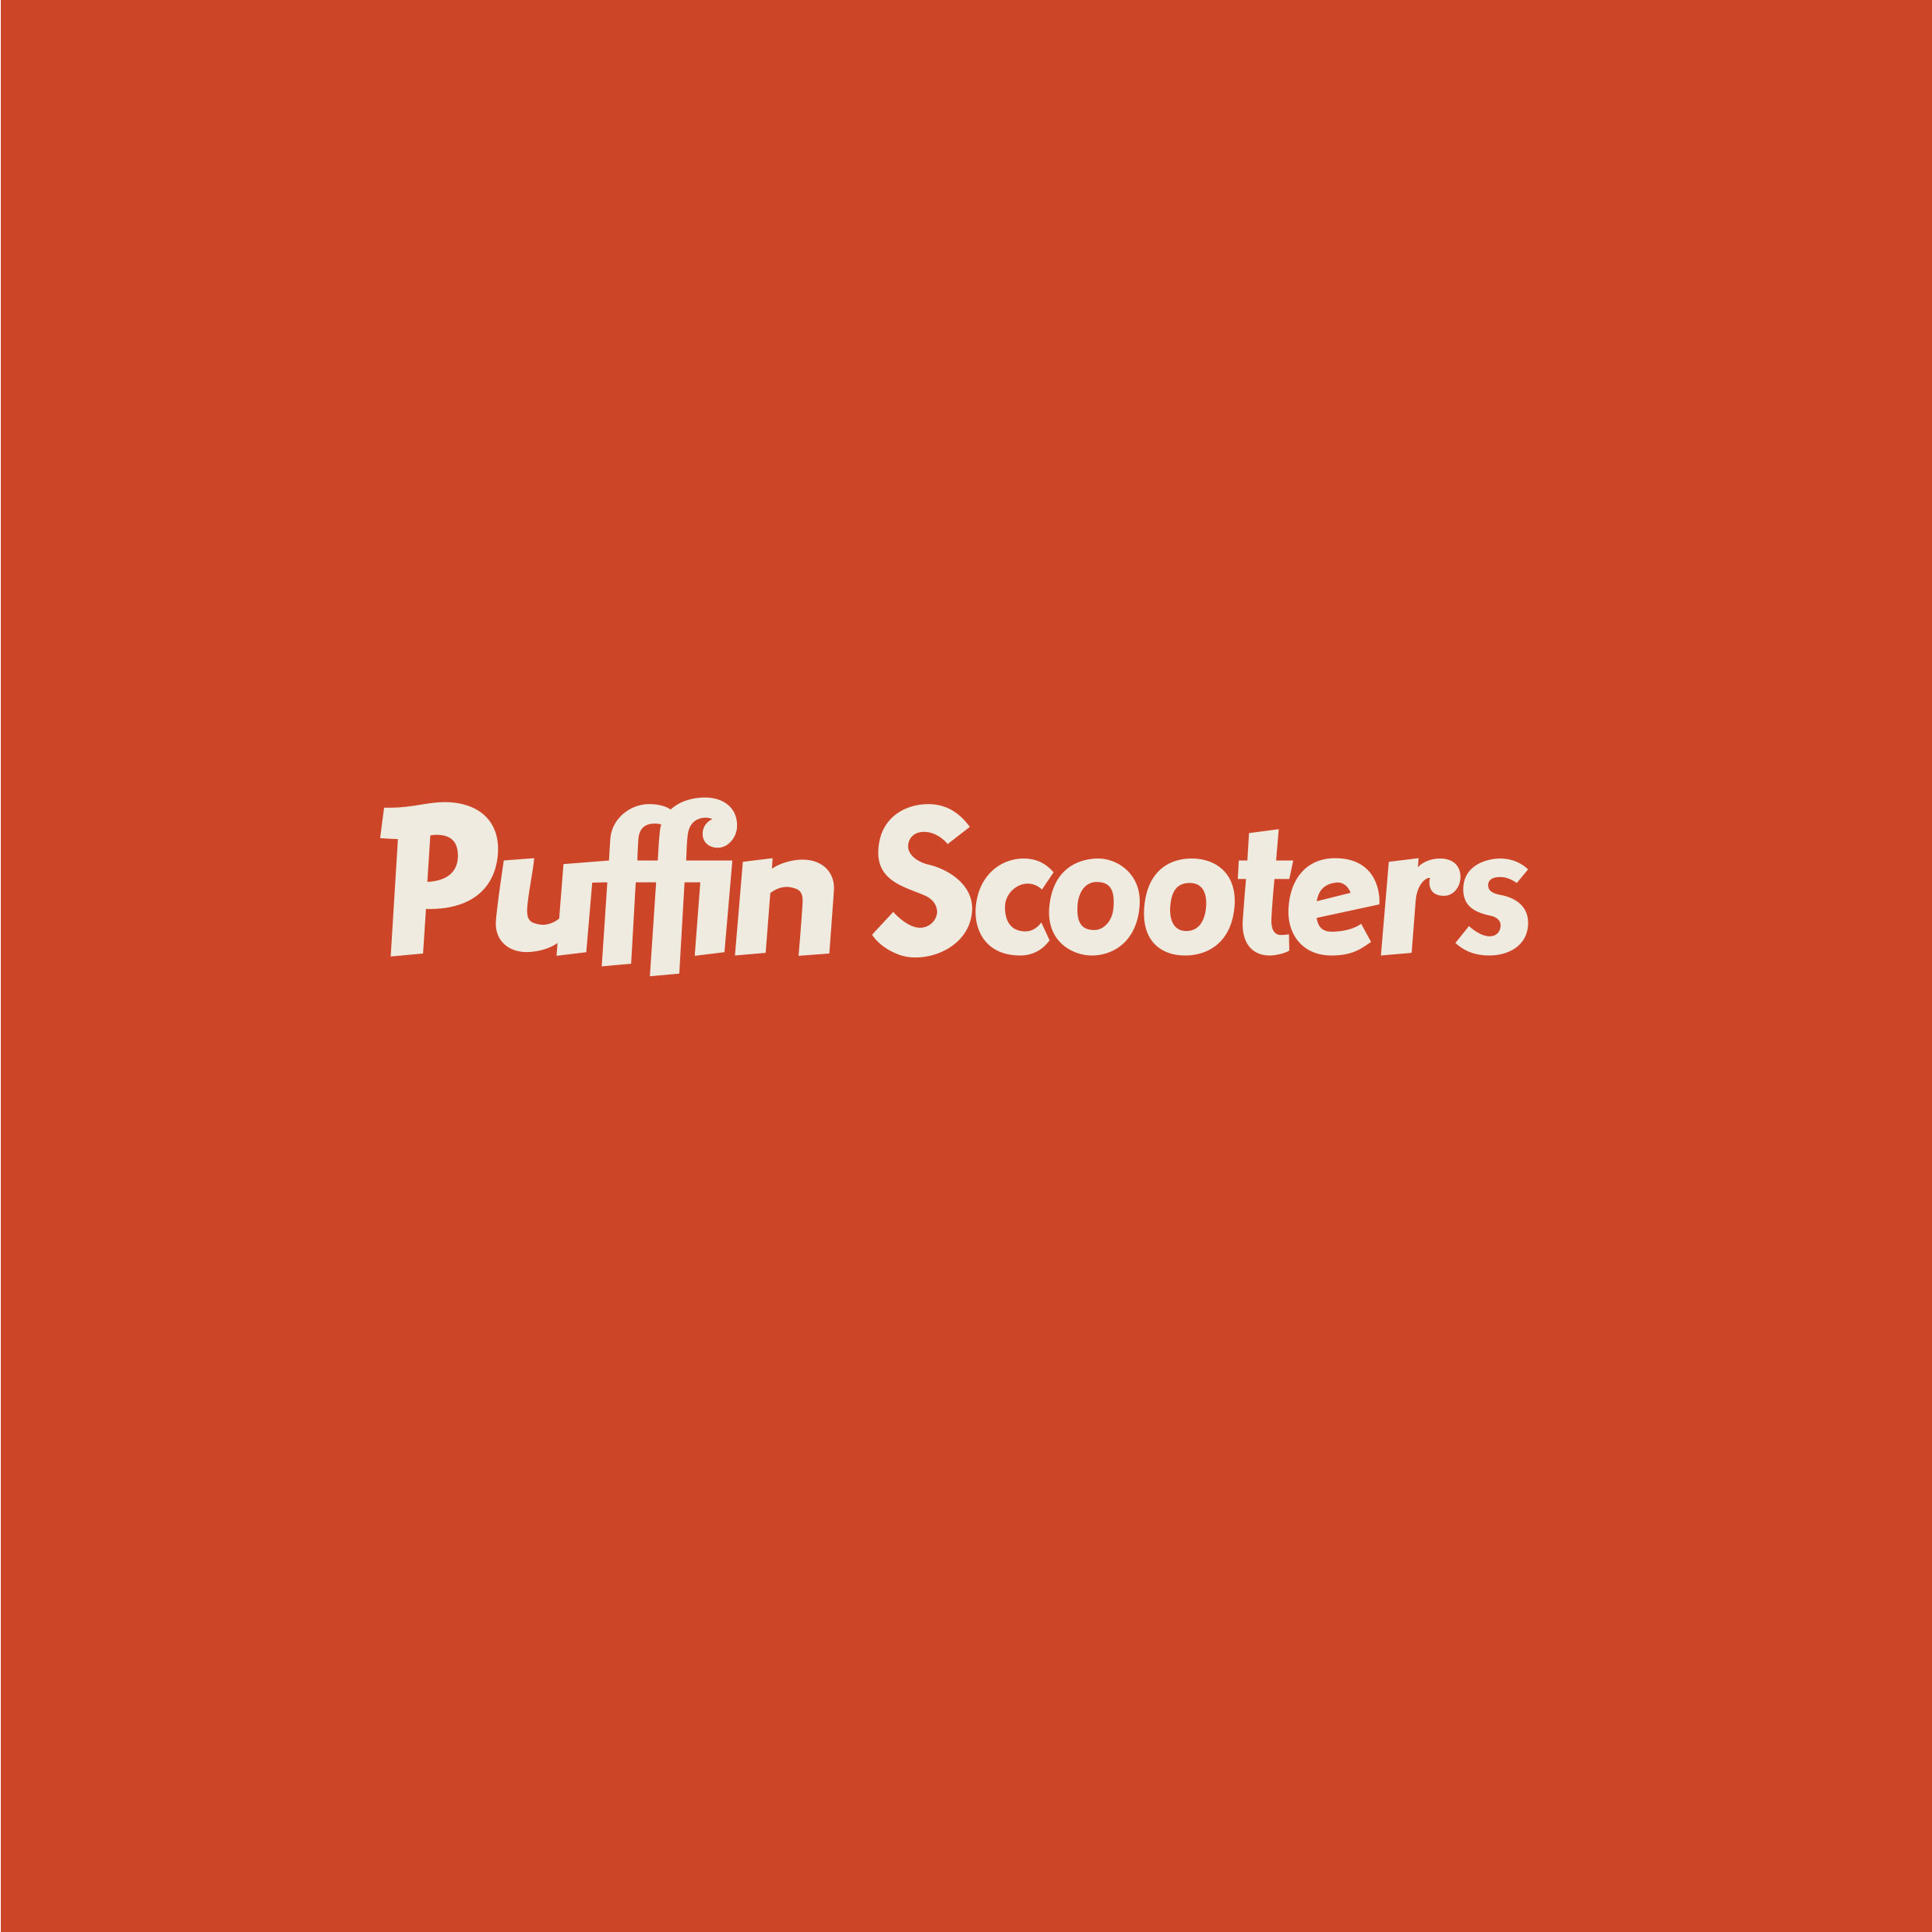 Puffin Scooters logo